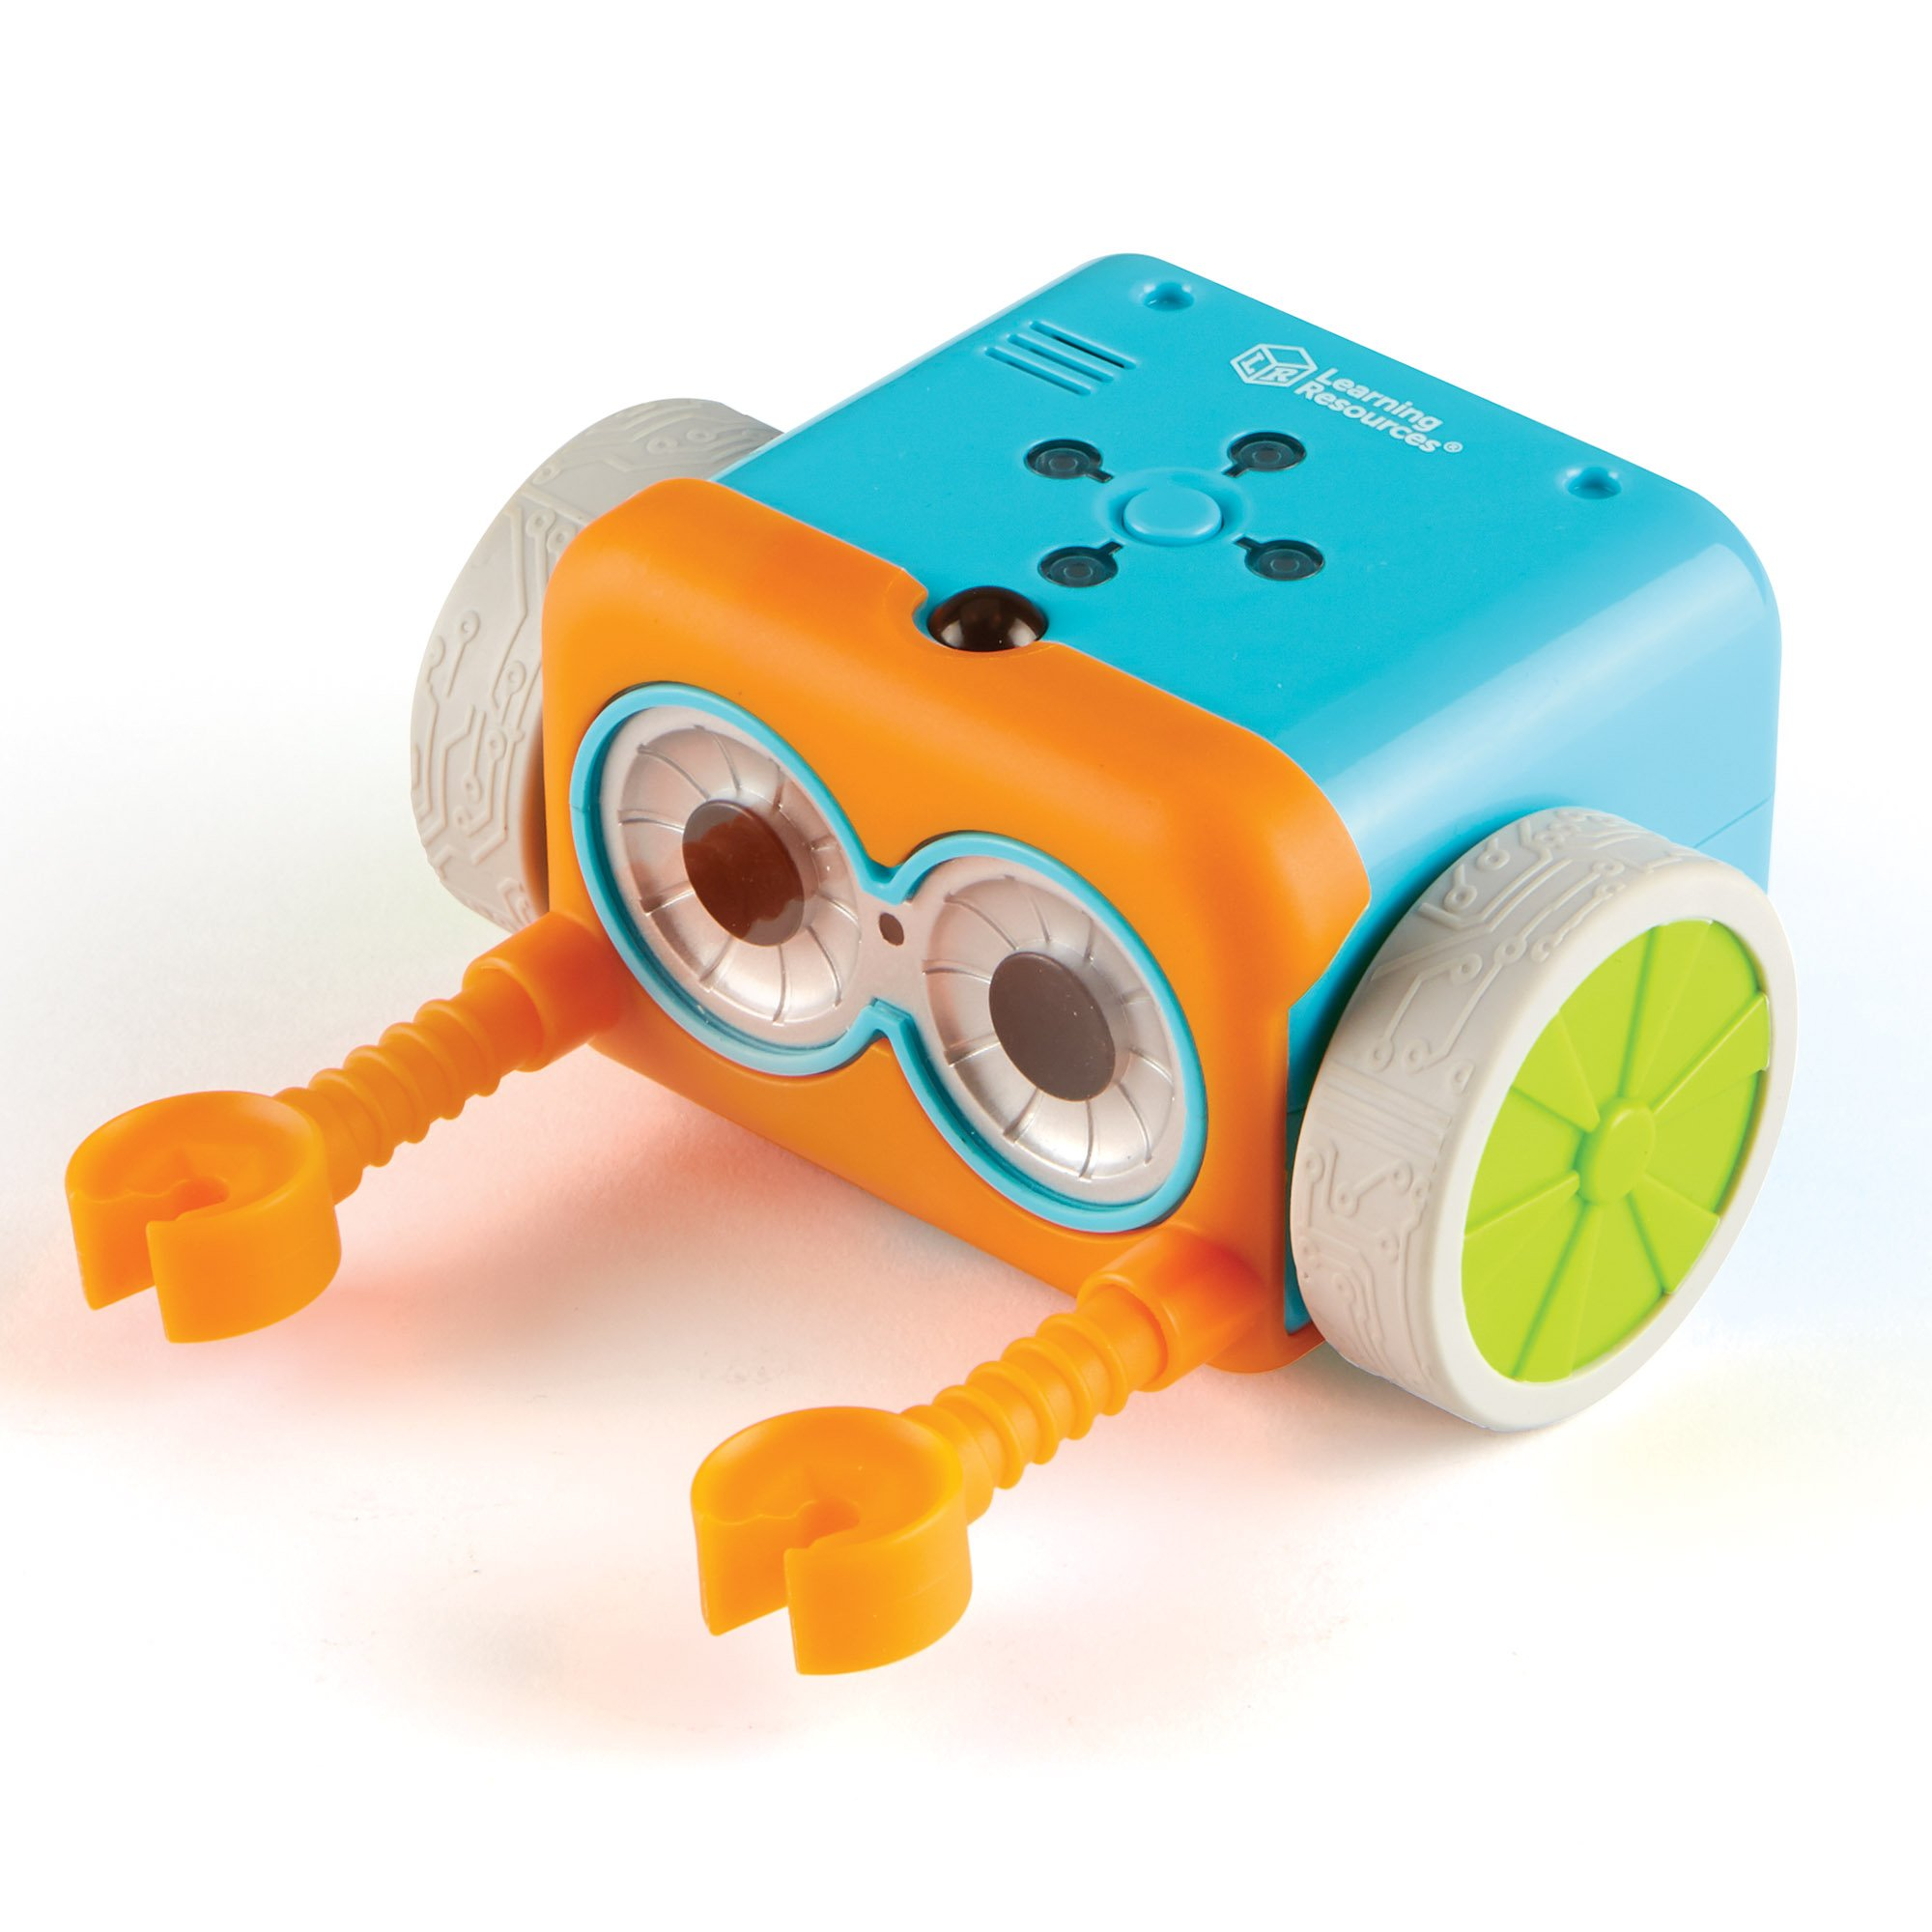 Review: Botley the Coding Robot offers fun introduction to